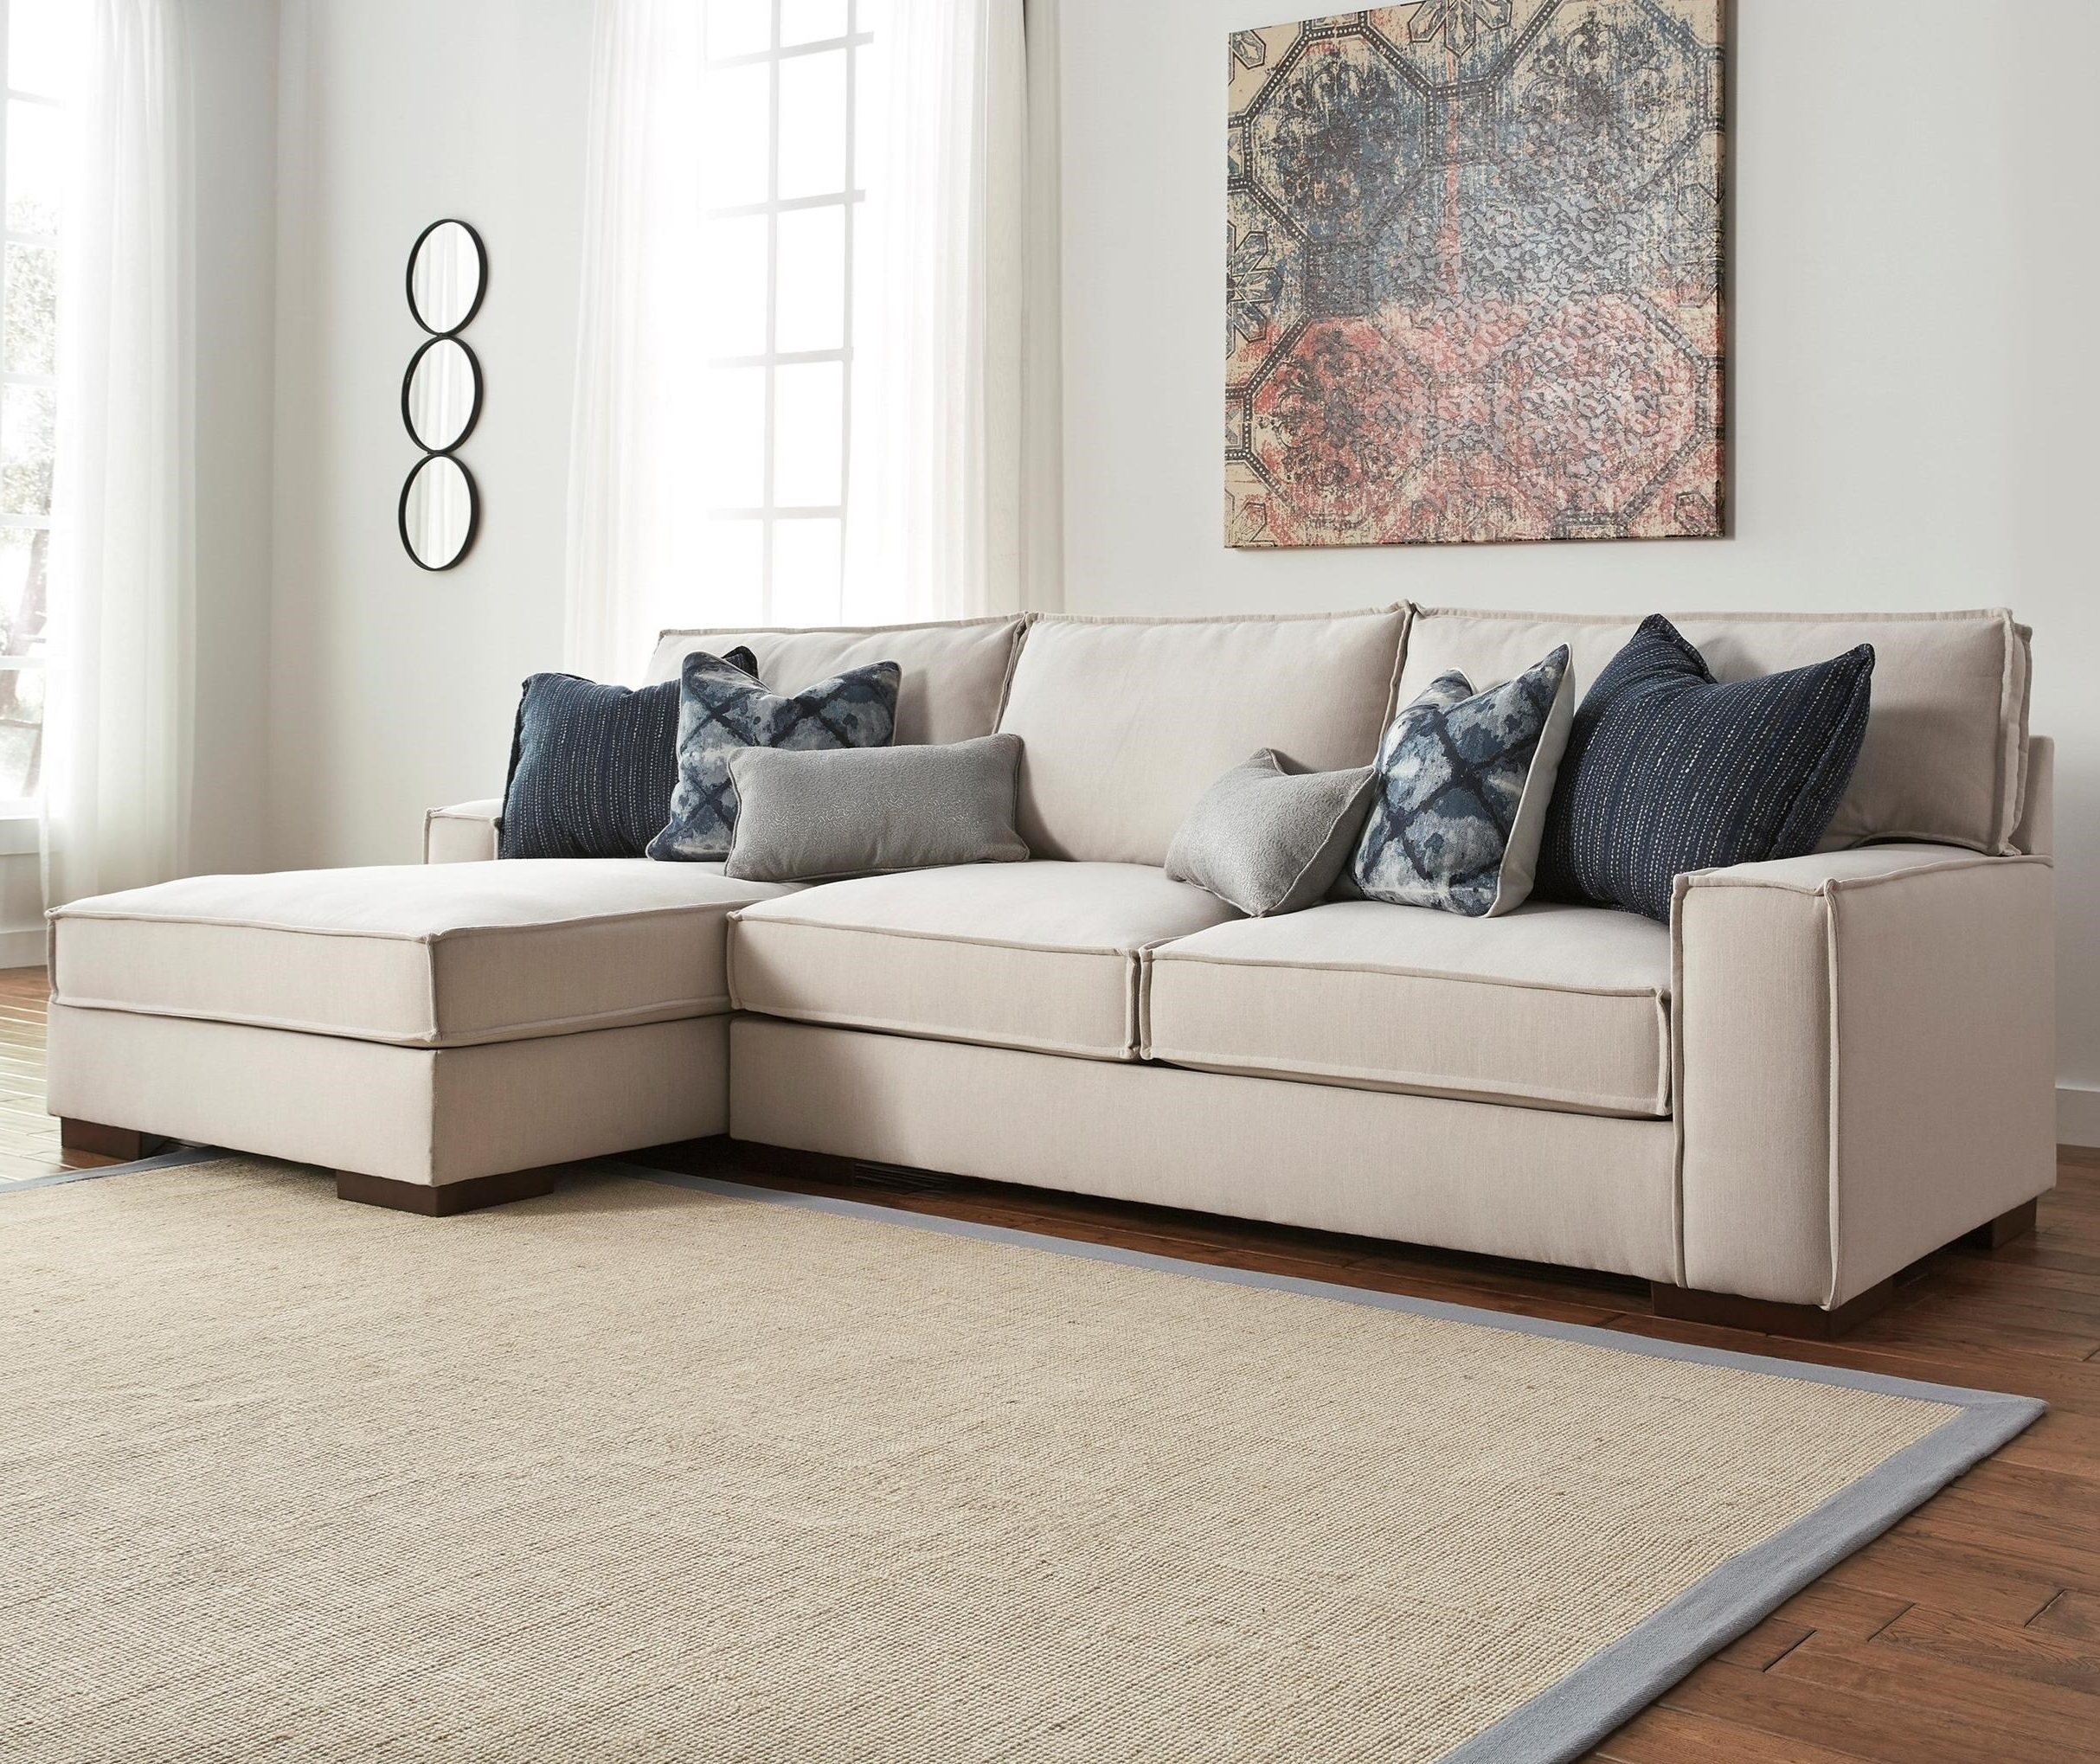 Benchcraft Kendleton Modern 2 Piece Sectional With Right Chaise In Most Up To Date 2 Piece Sectionals With Chaise (View 12 of 15)